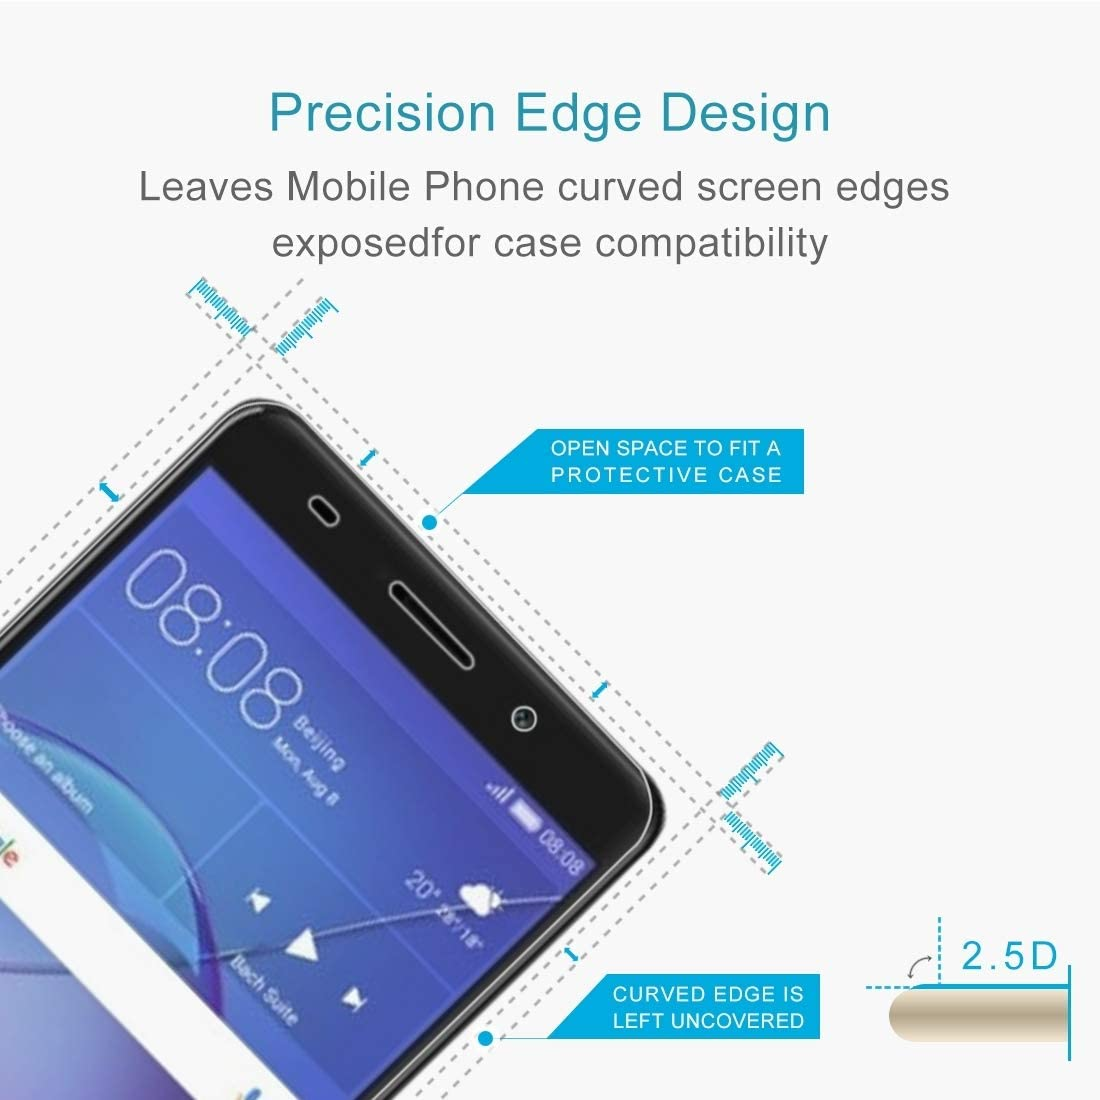 LIUDSASSBFQINGR Screen Protectors 100 PCS for Huawei Y3 2017 0.3mm 9H Surface Hardness 2.5D Explosion-Proof Full Screen Tempered Glass Screen Film Cell Phones Accessories